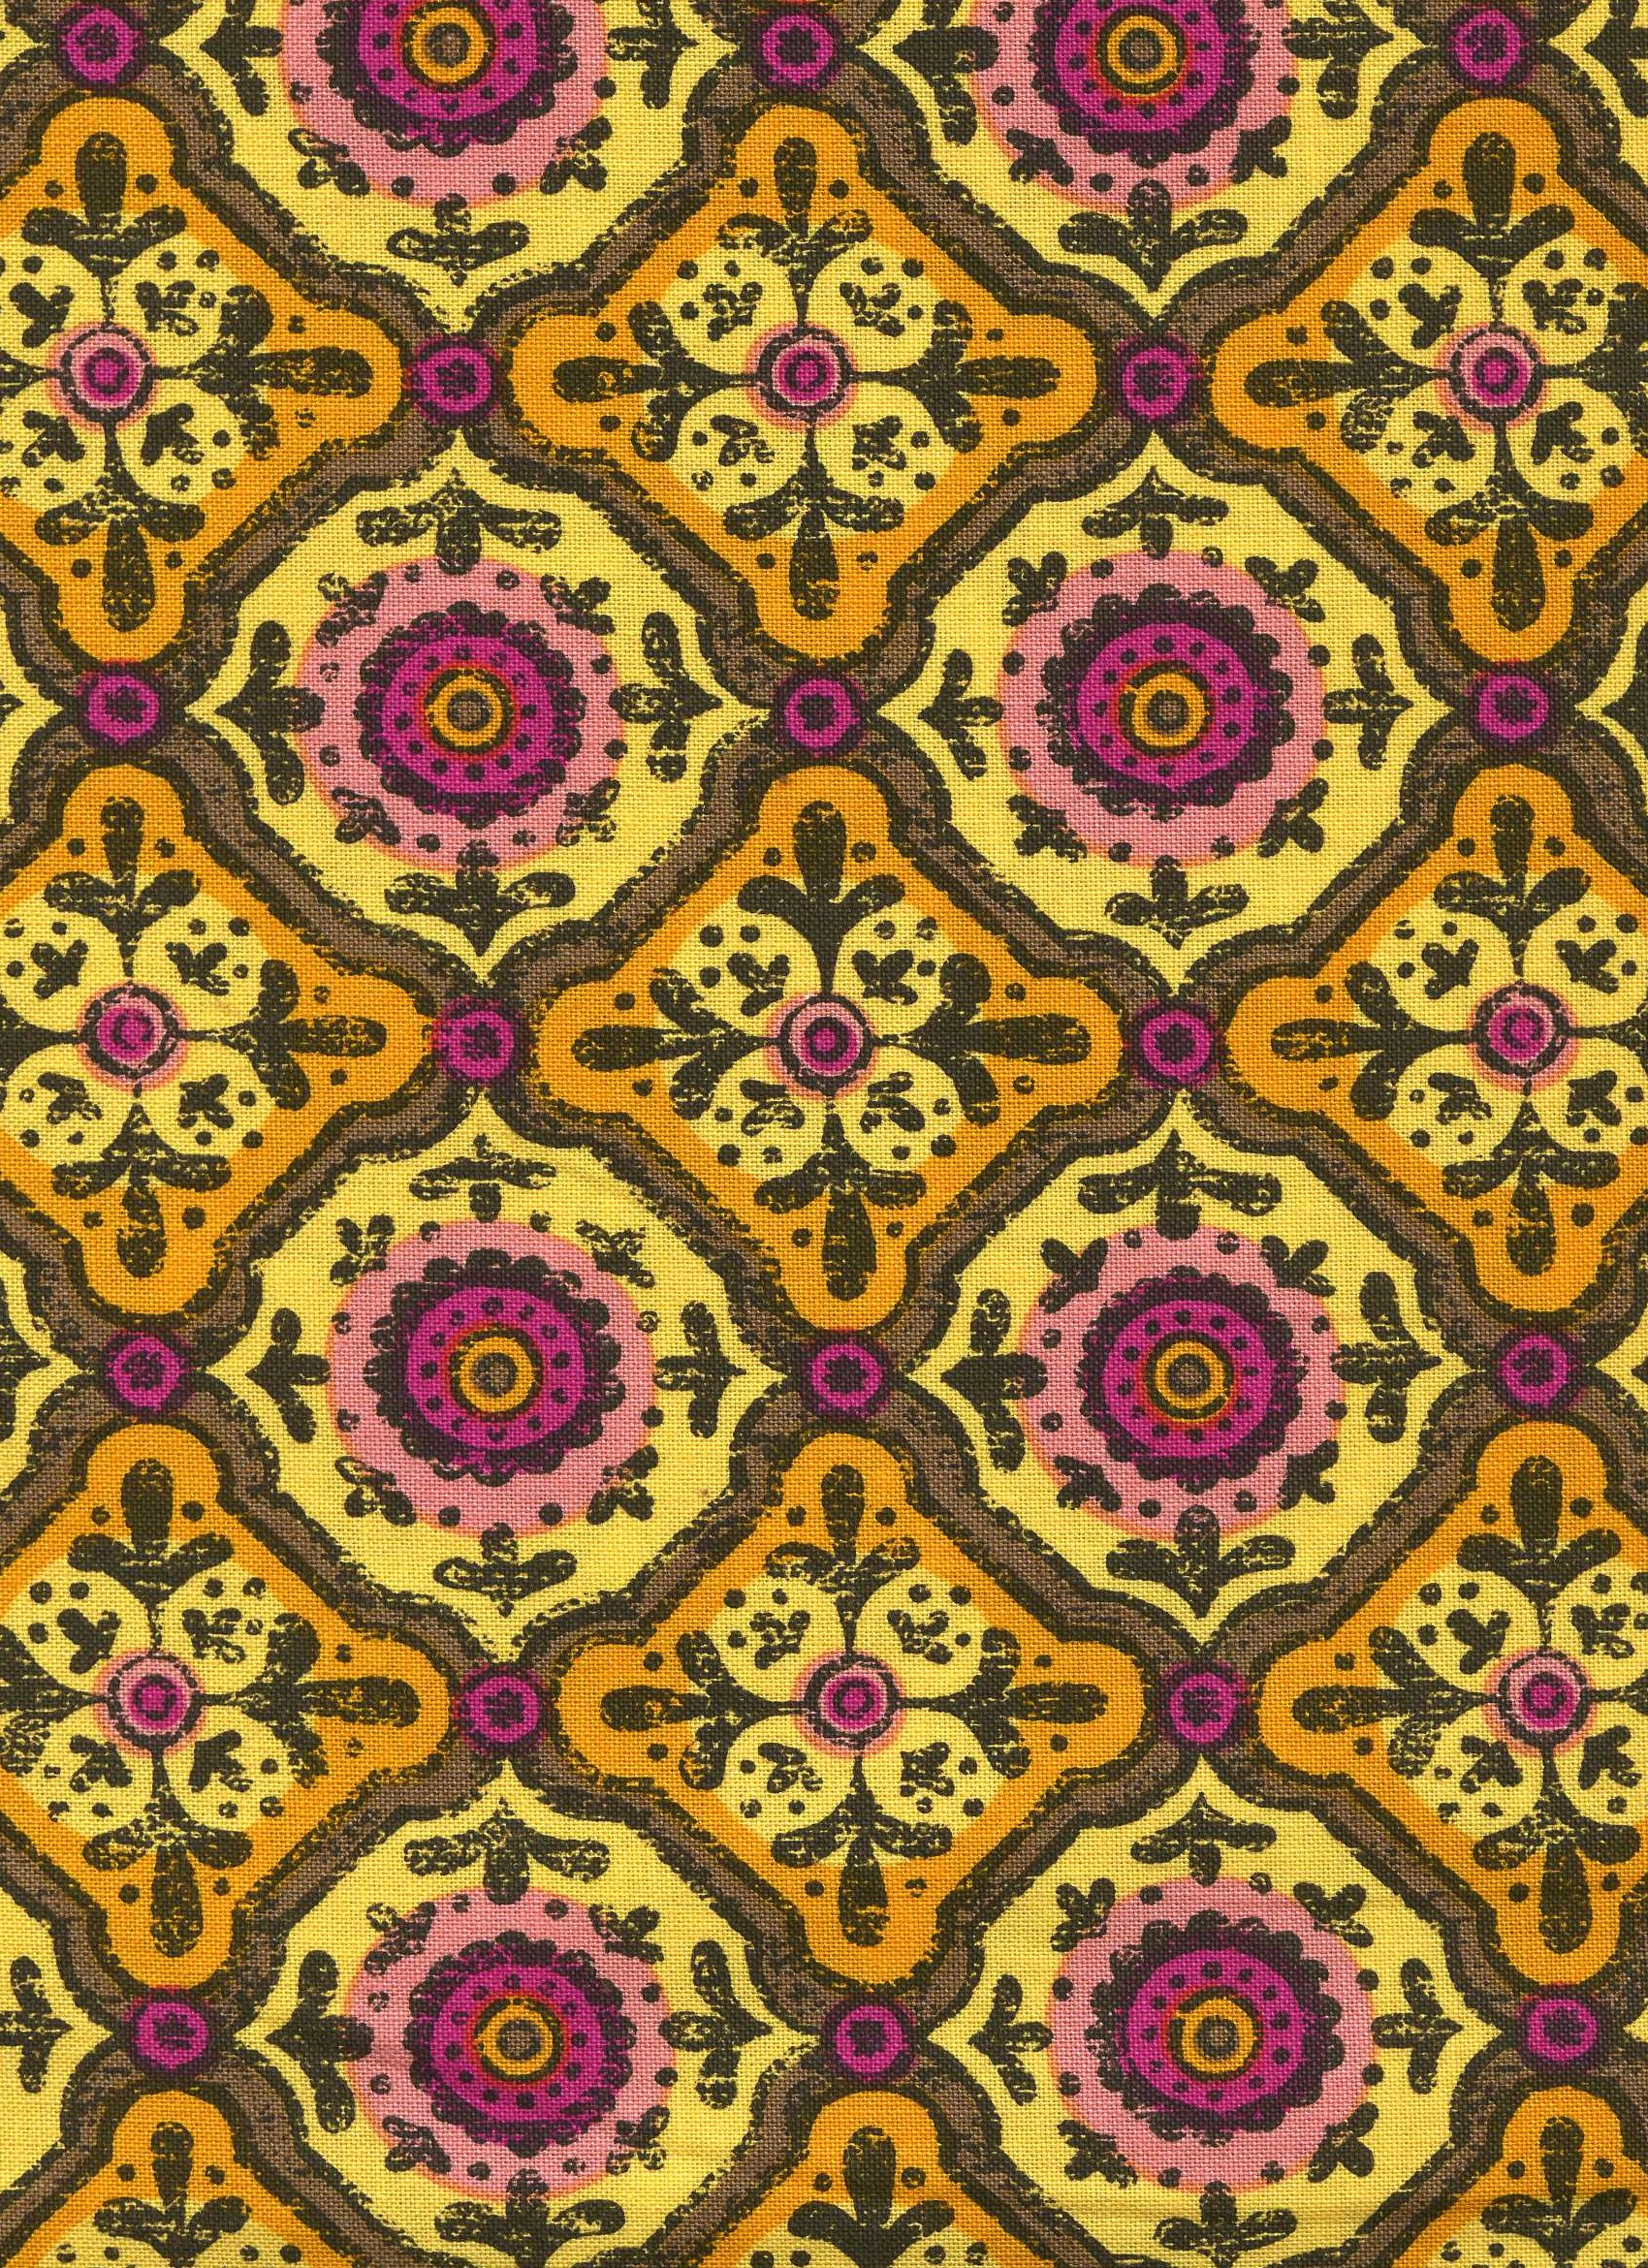 Gypsy Garden-Yellow Medallion Print